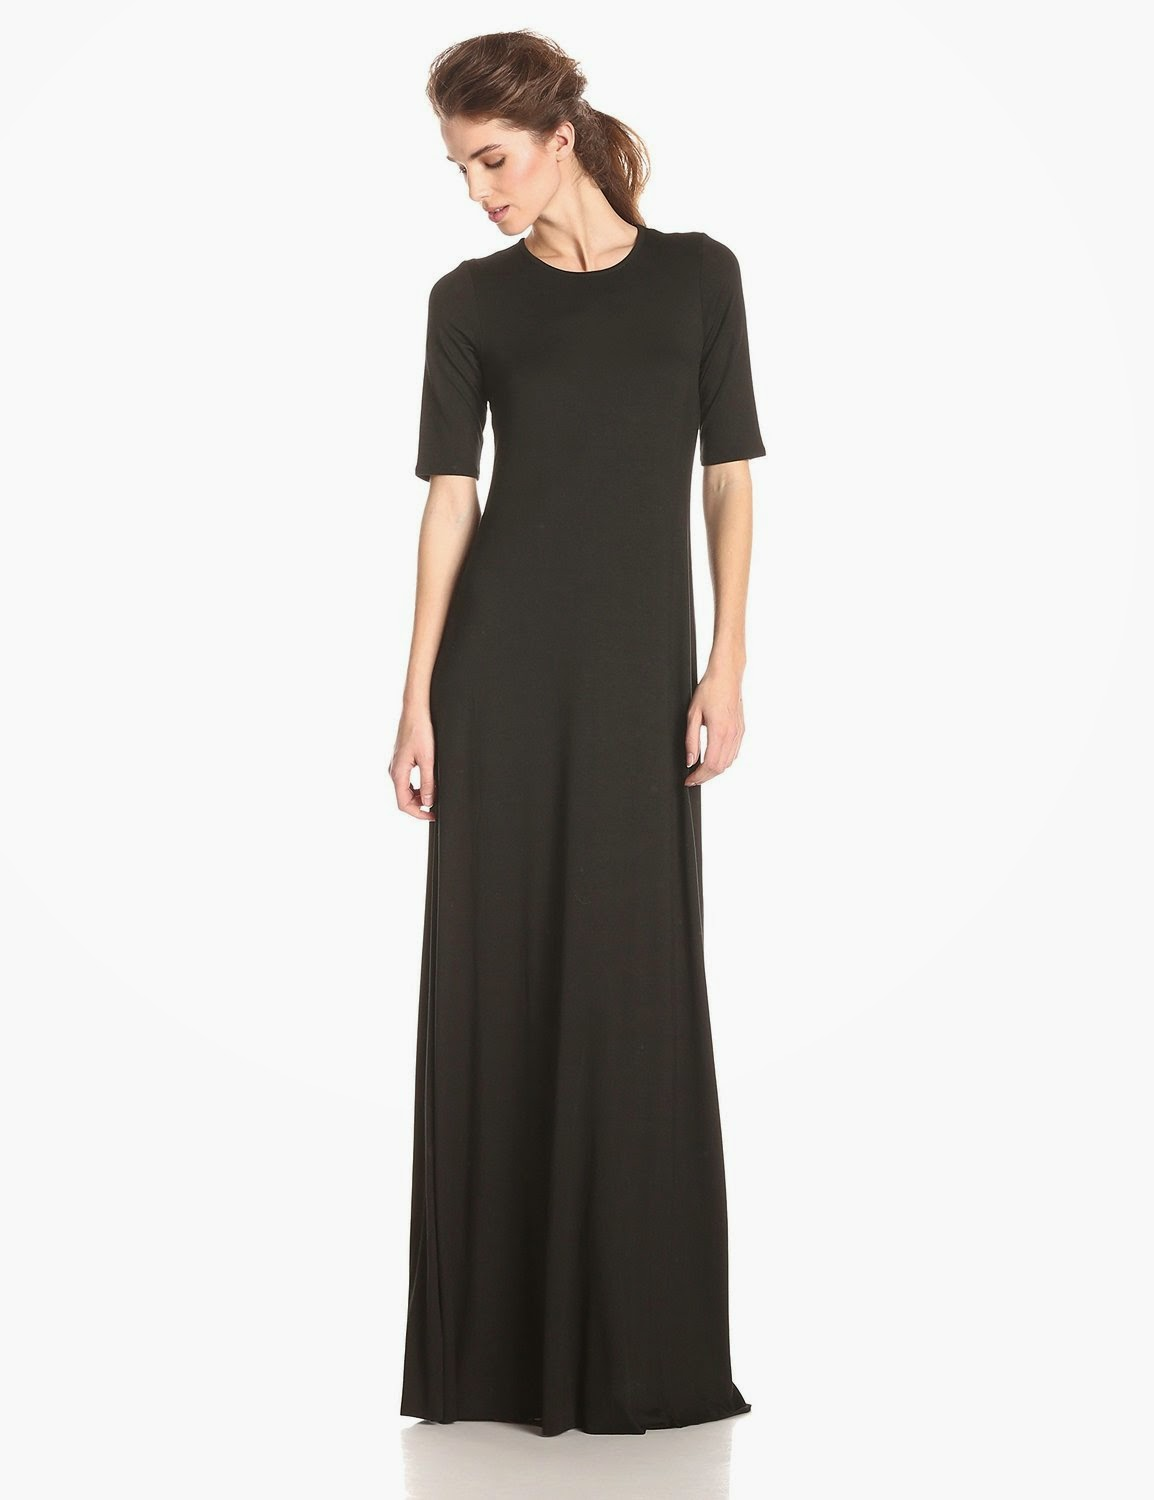 Modest Rachel Pally maxi dress with sleeves | Shop Mode-sty #nolayering tznius tzniut jewish orthodox muslim islamic pentecostal mormon lds evangelical christian apostolic mission clothes Jerusalem trip hijab fashion modest muslimah hijabista